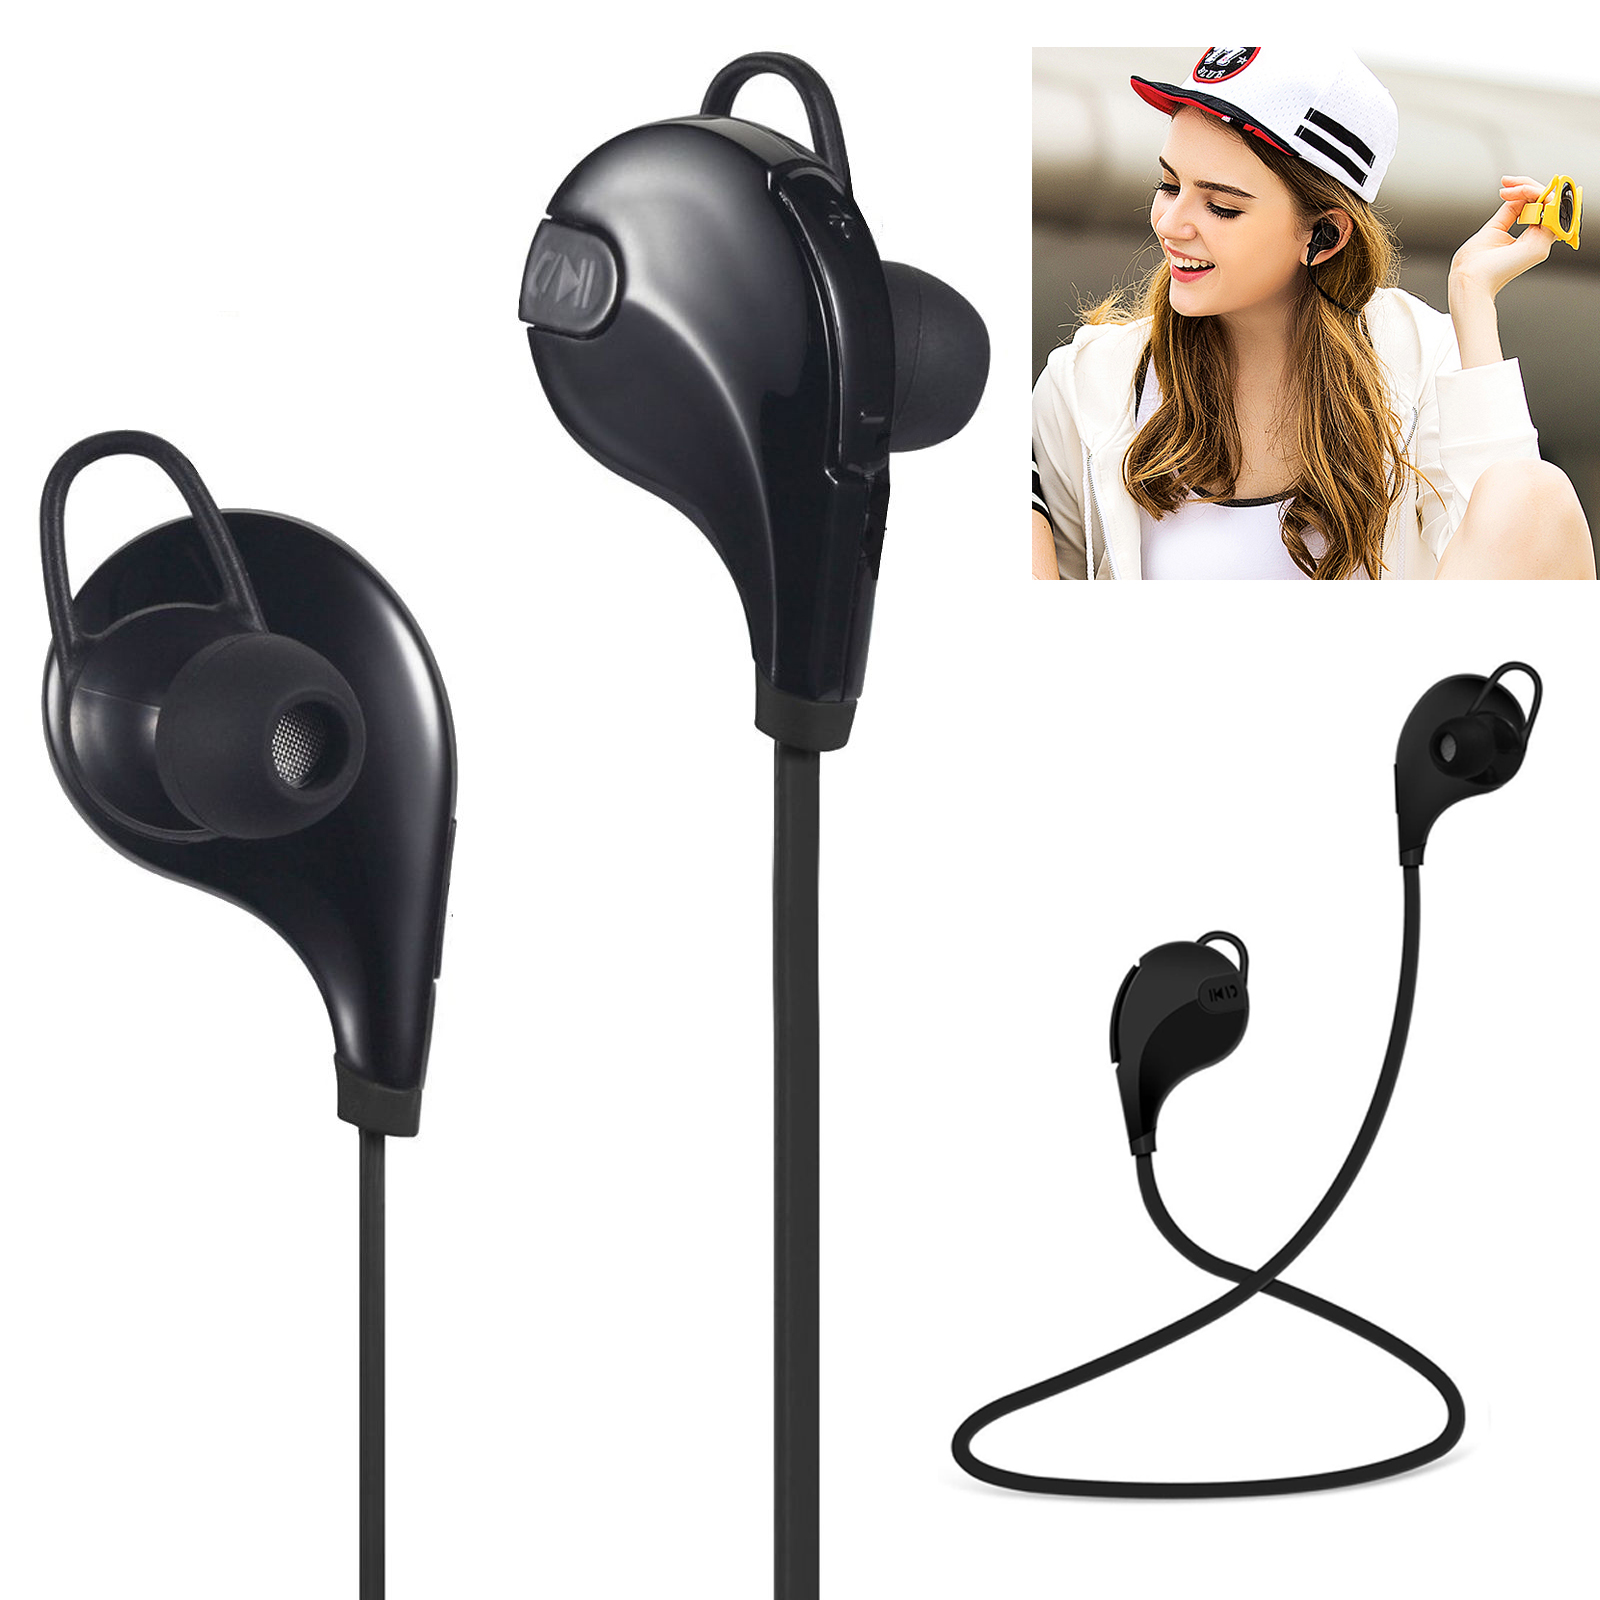 Bluetooth 4.1 Wireless Headphones Sports Stereo In-ear Earphones Earbuds Headset Universal(Black)